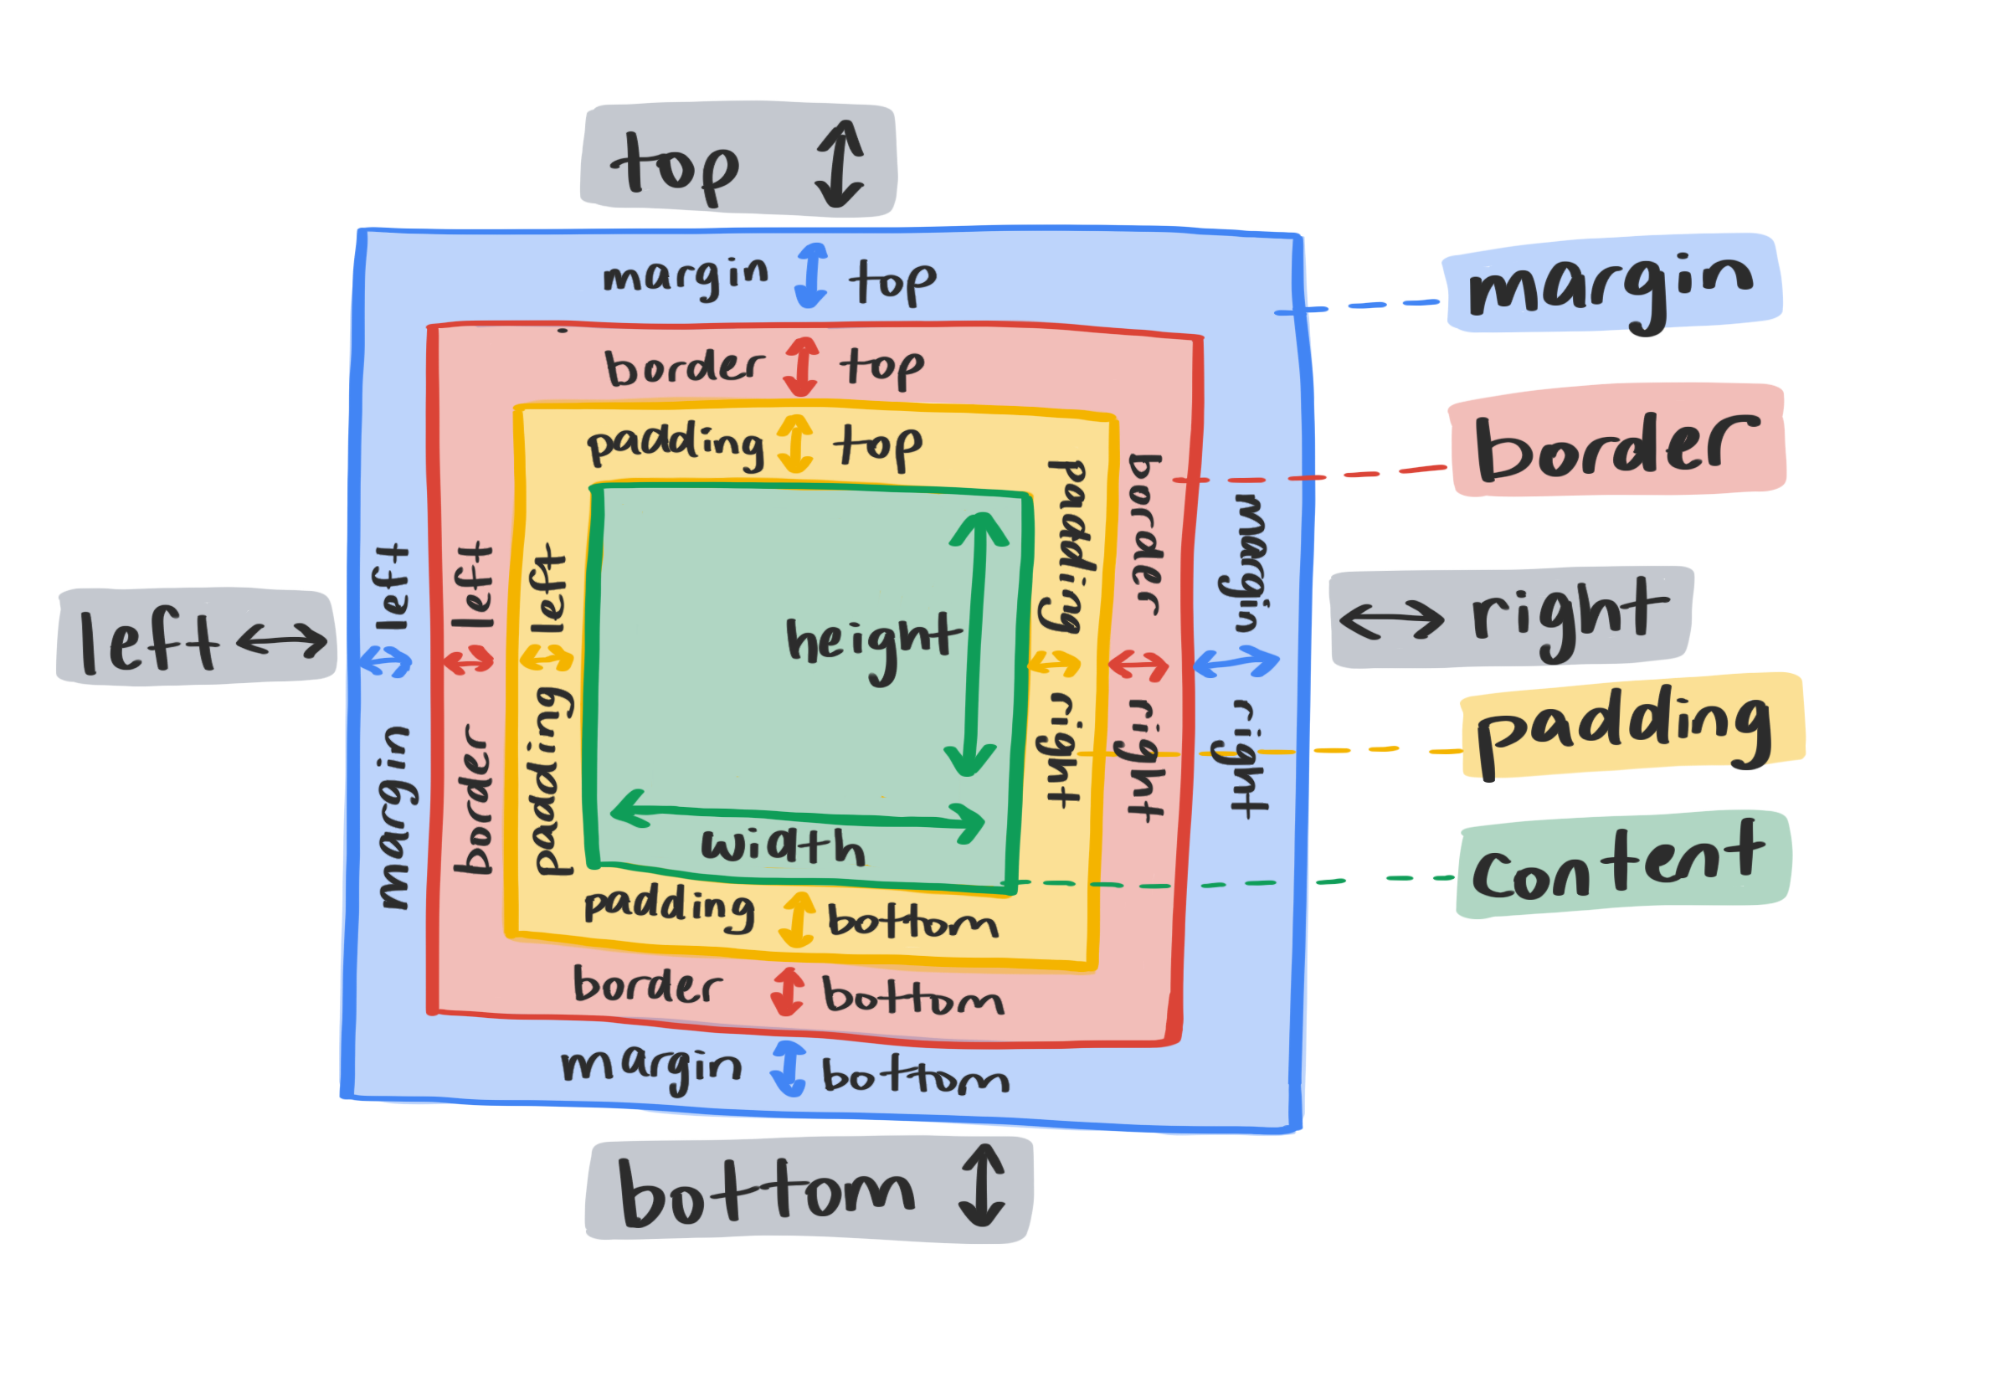 A diagram showing traditional CSS layout properties.